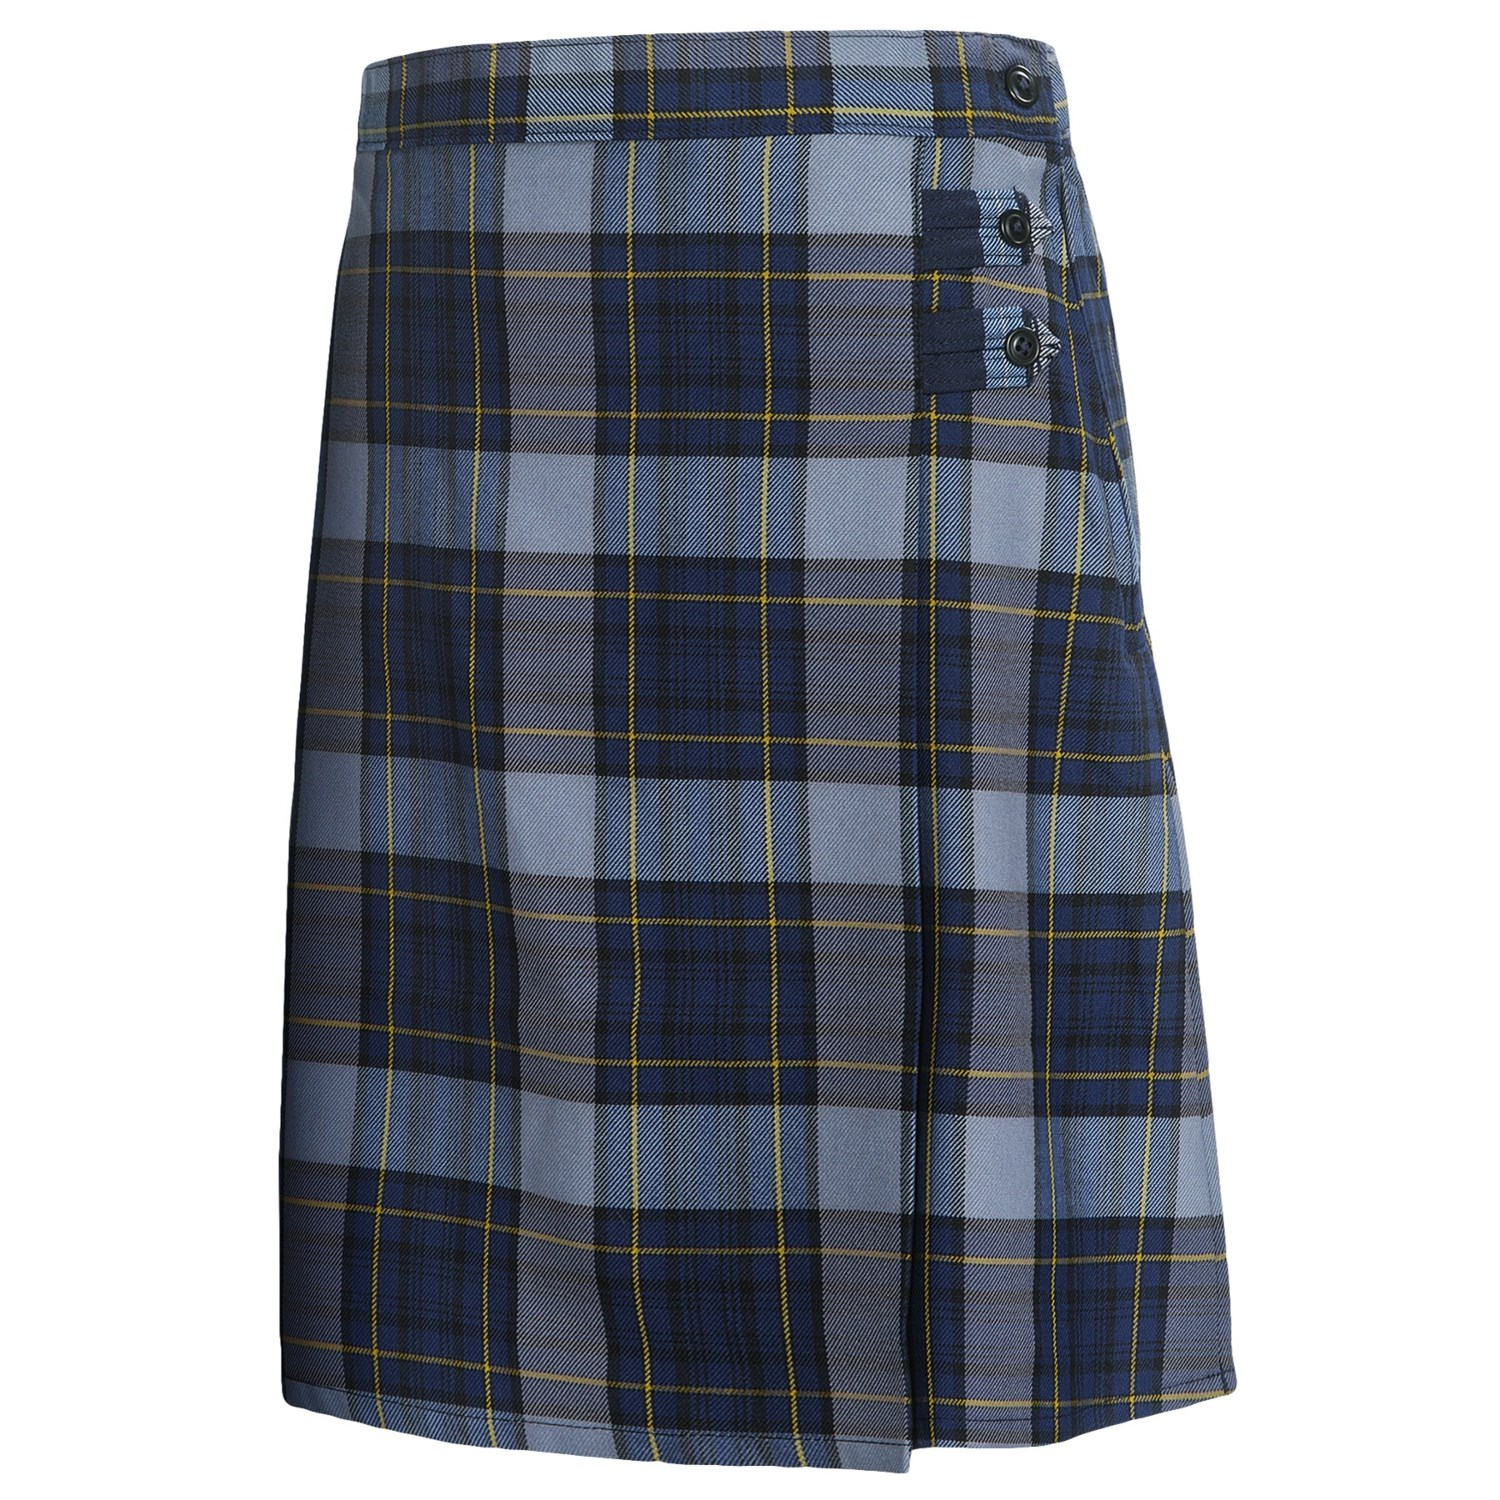 matches. ($ - $) Find great deals on the latest styles of Sexy school girl mini skirt in dark red and green plaid junior size adult. Compare prices & save money on Women's Skirts.